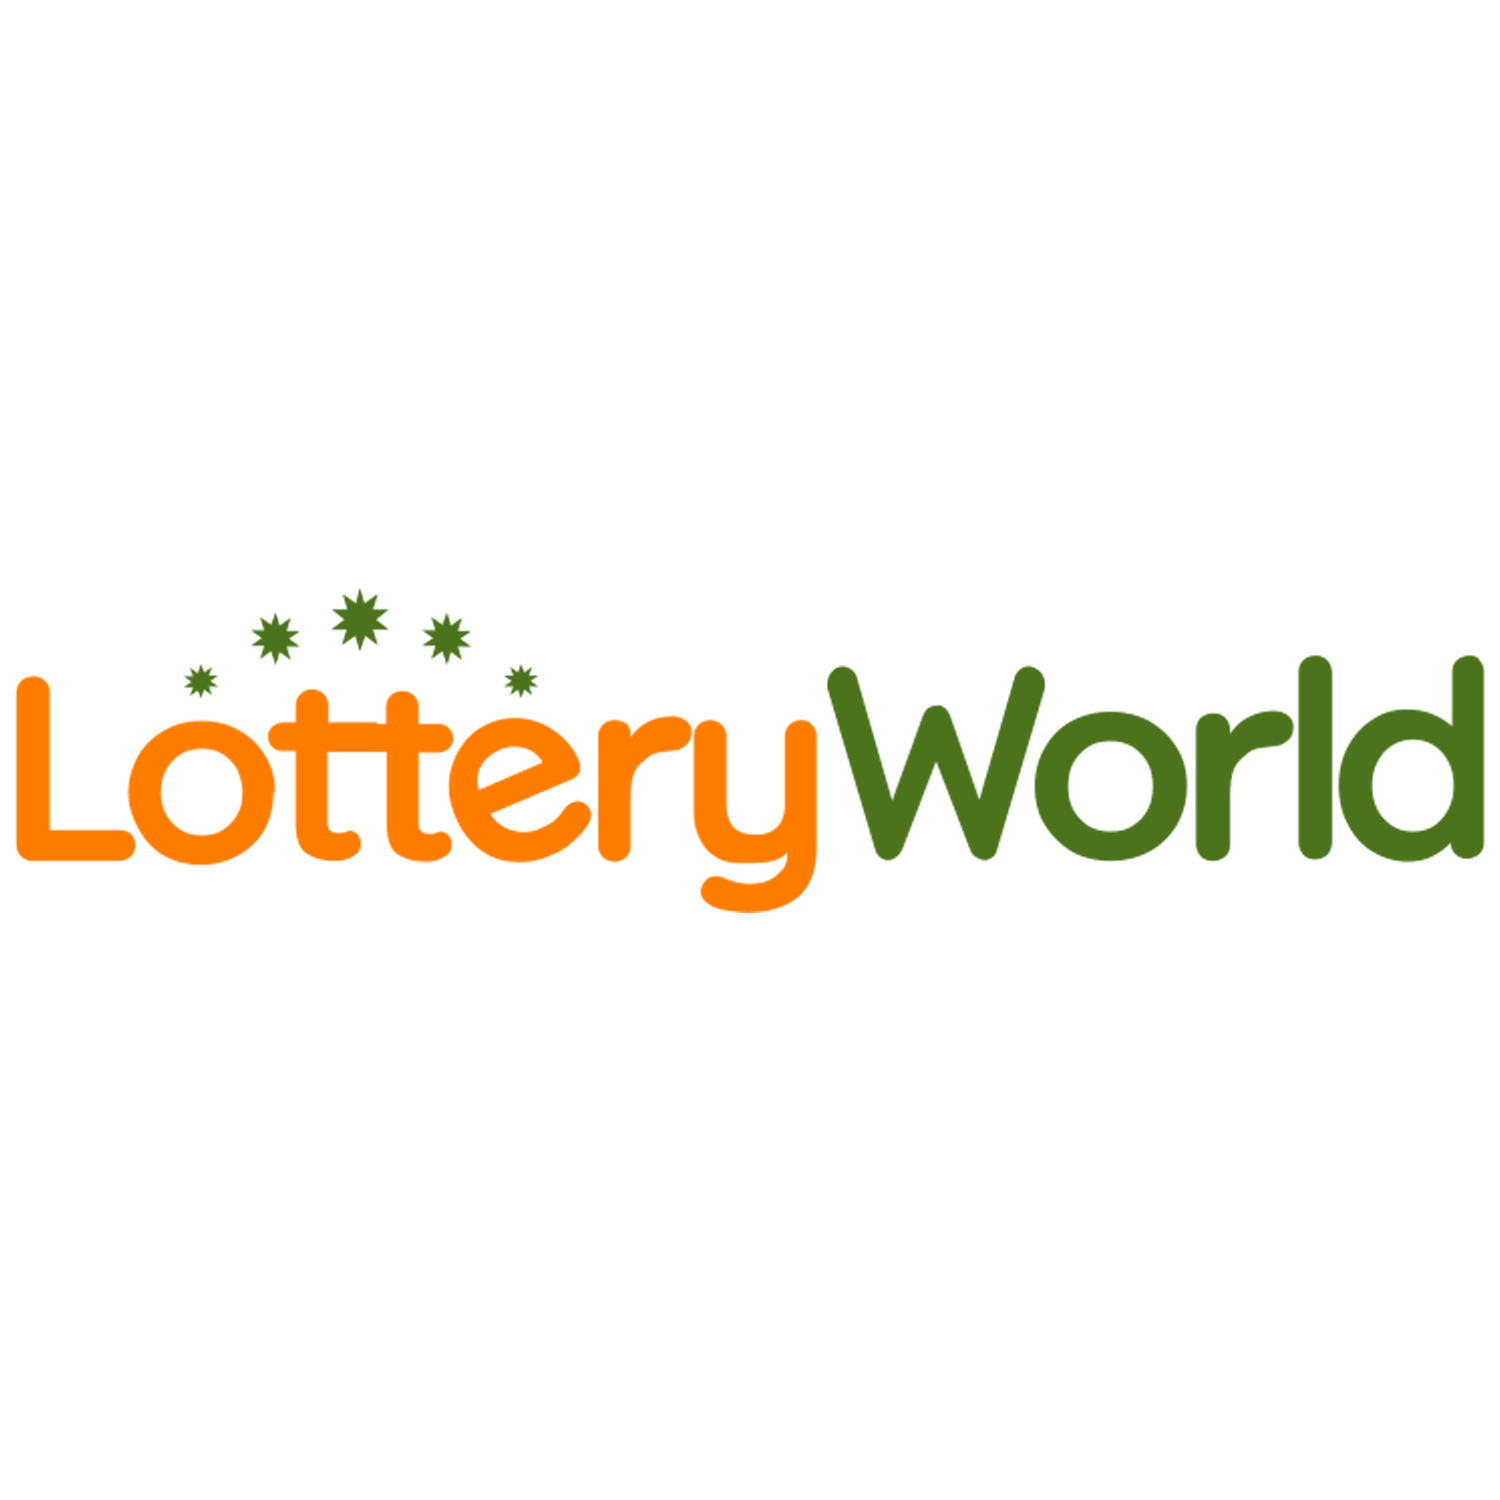 LotteryWorld offers tickets for many online lotteries.